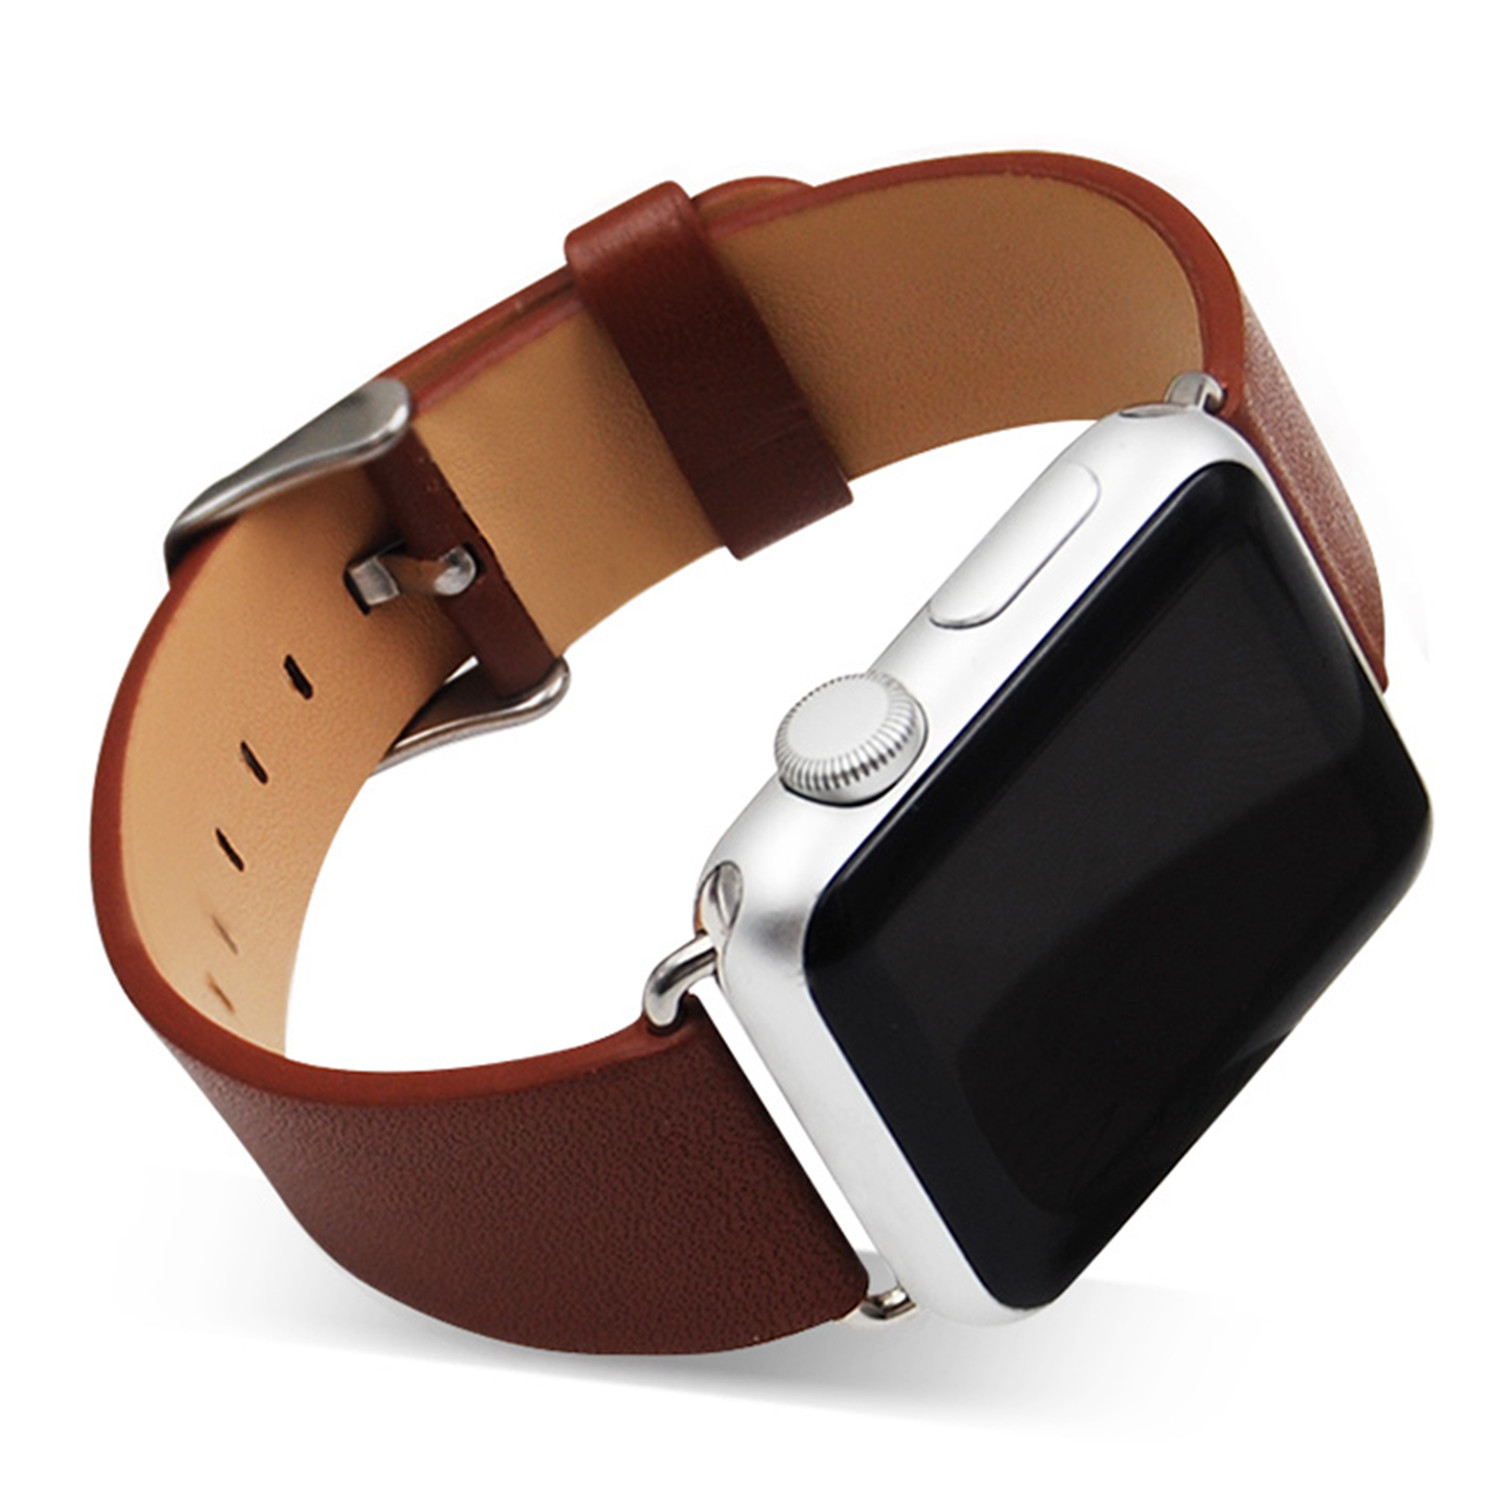 CRESTED genuine leather watchband starp for apple watch band 42 mm/38 Wrist Strap Bracelets & Stainless Steel Buckle for iwatch watch band 20mm 21mm 22mm brown genuine leather strap deployment steel watch buckle wrist watch band watch strap bracelets